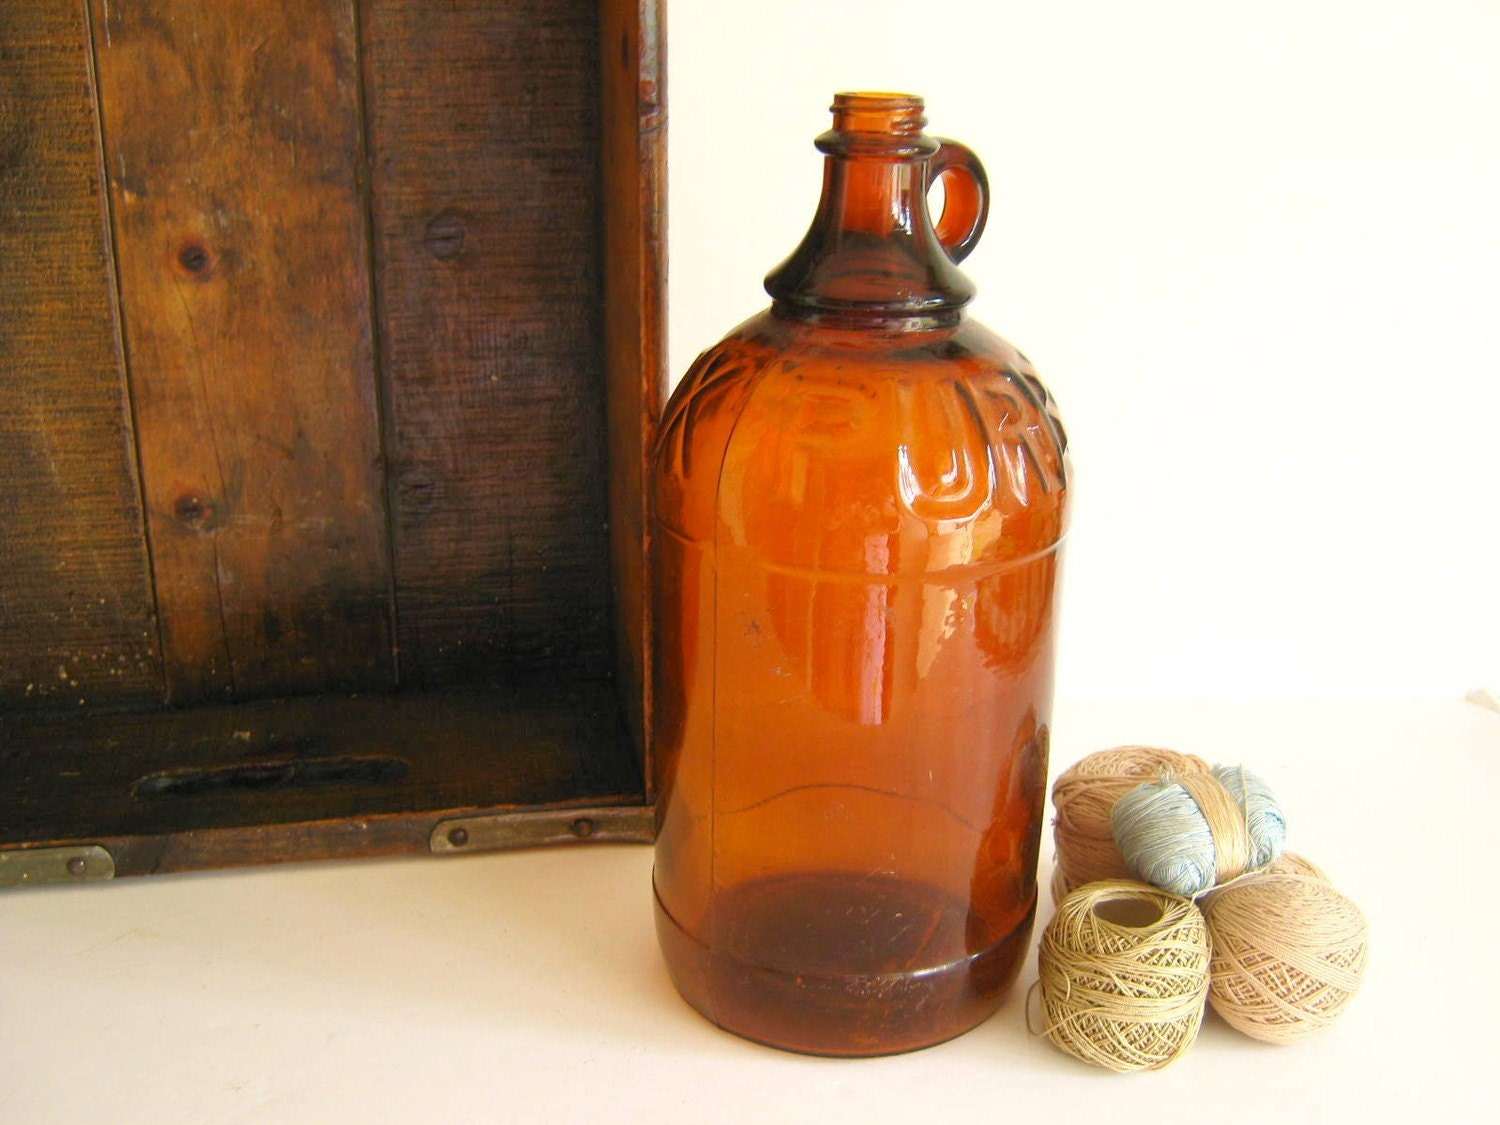 Purex Bleach Bottle Jug Amber Antique 1930s Autumn Home